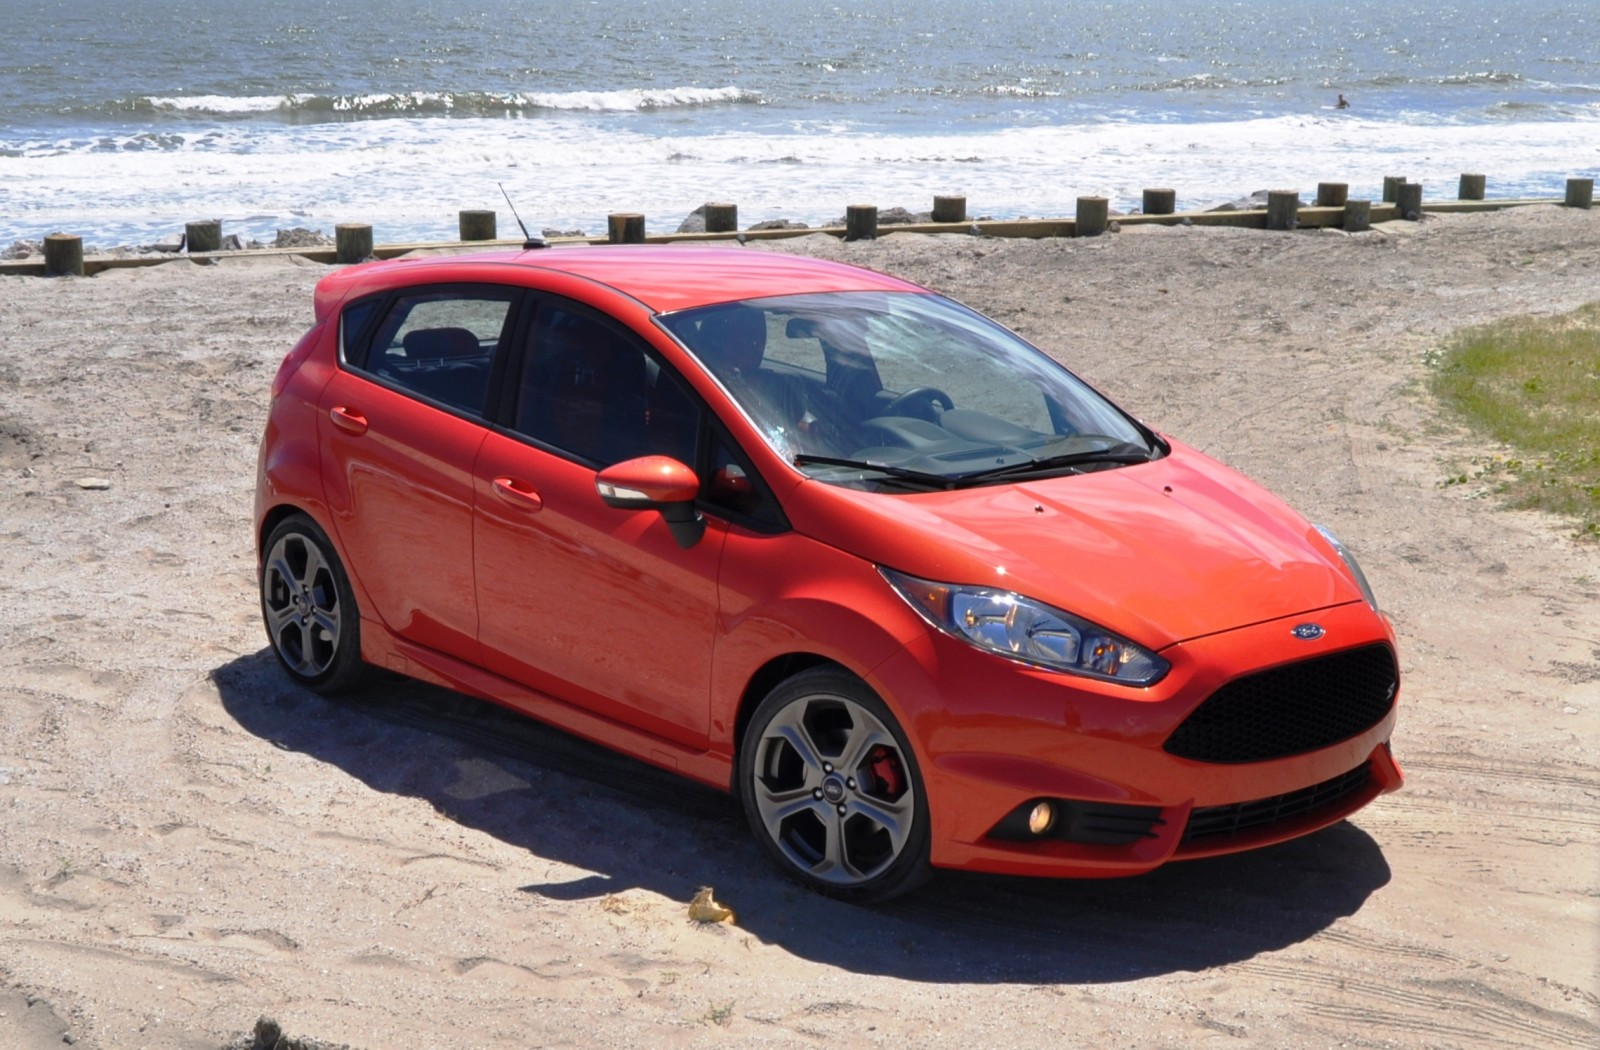 Ford fiesta st 2014 long term test review road testing reviews apps directories